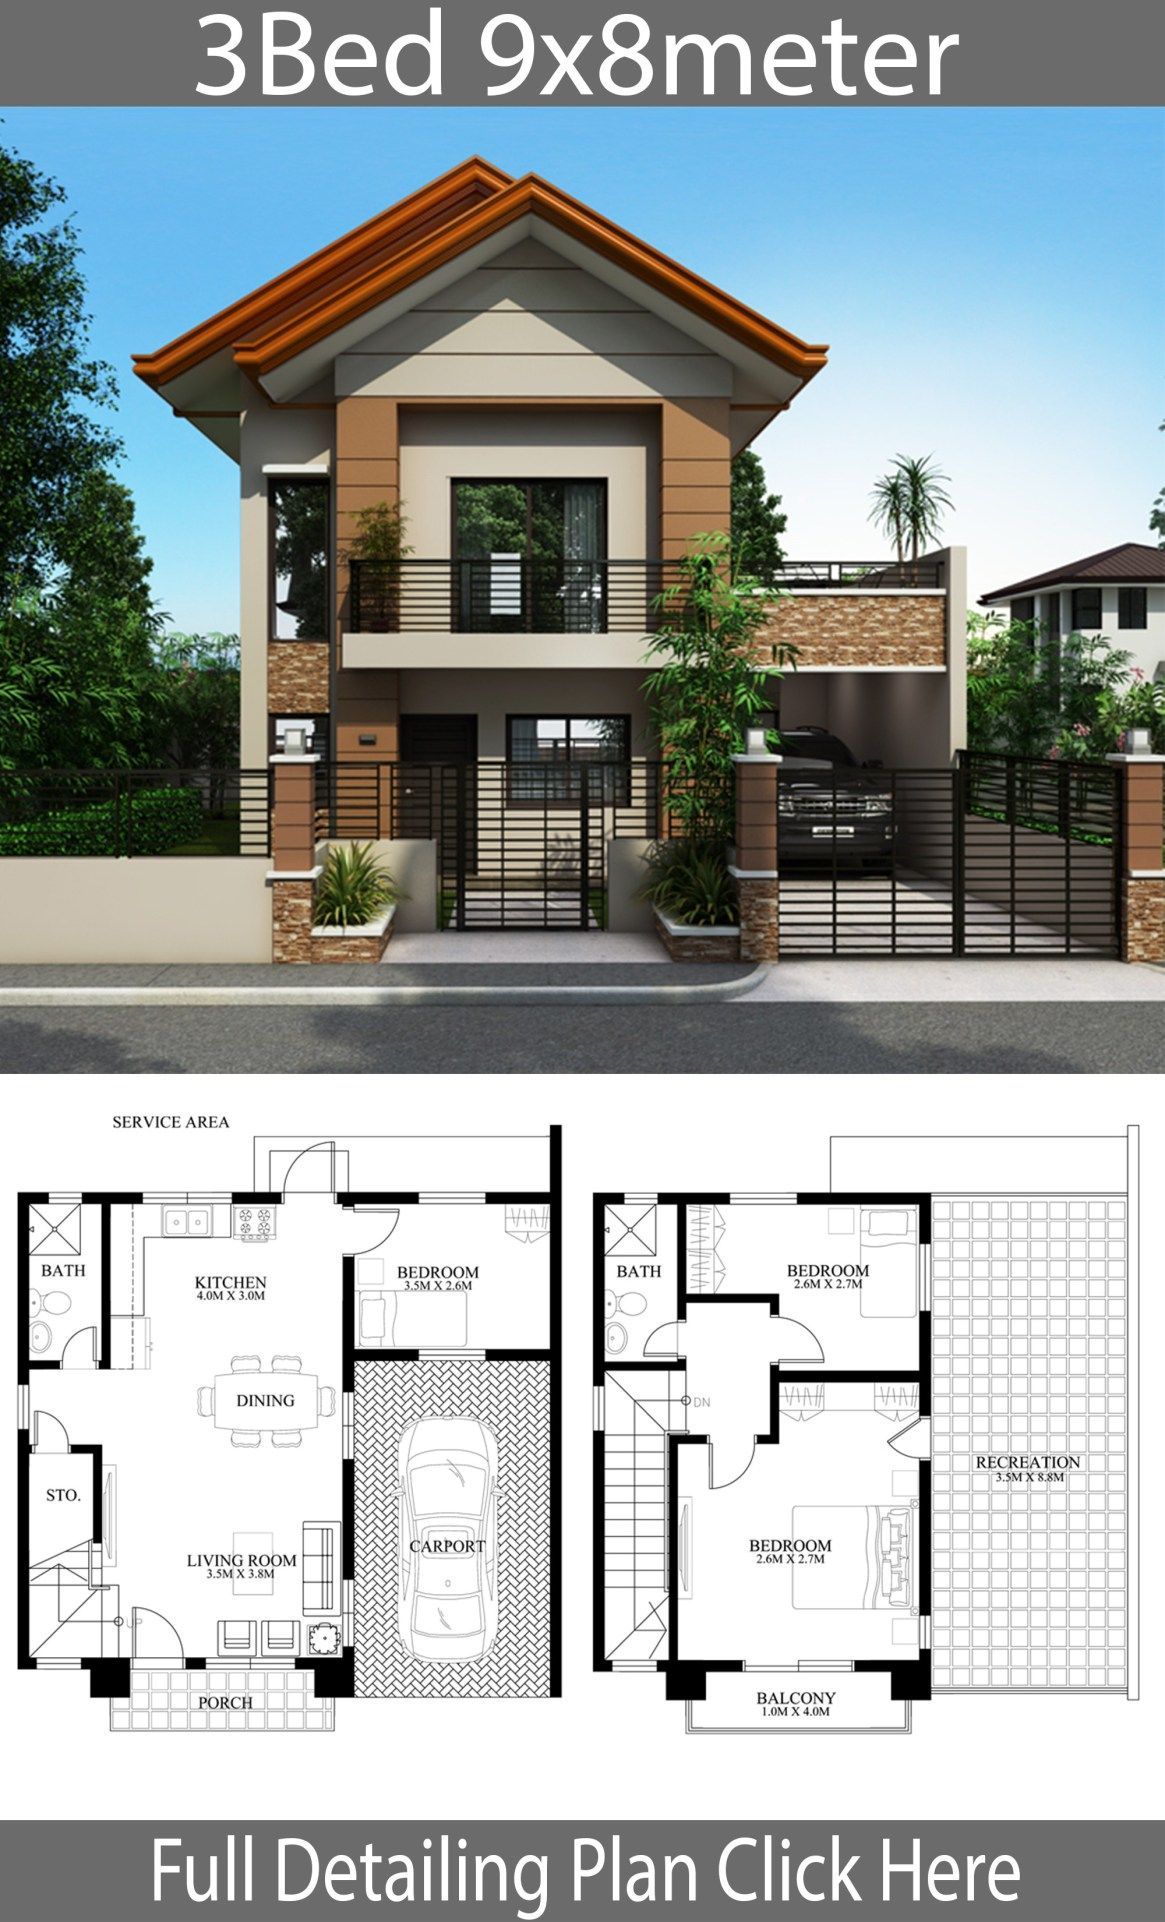 Home Design Plan 9x8m With 3 Bedrooms Simple House Design